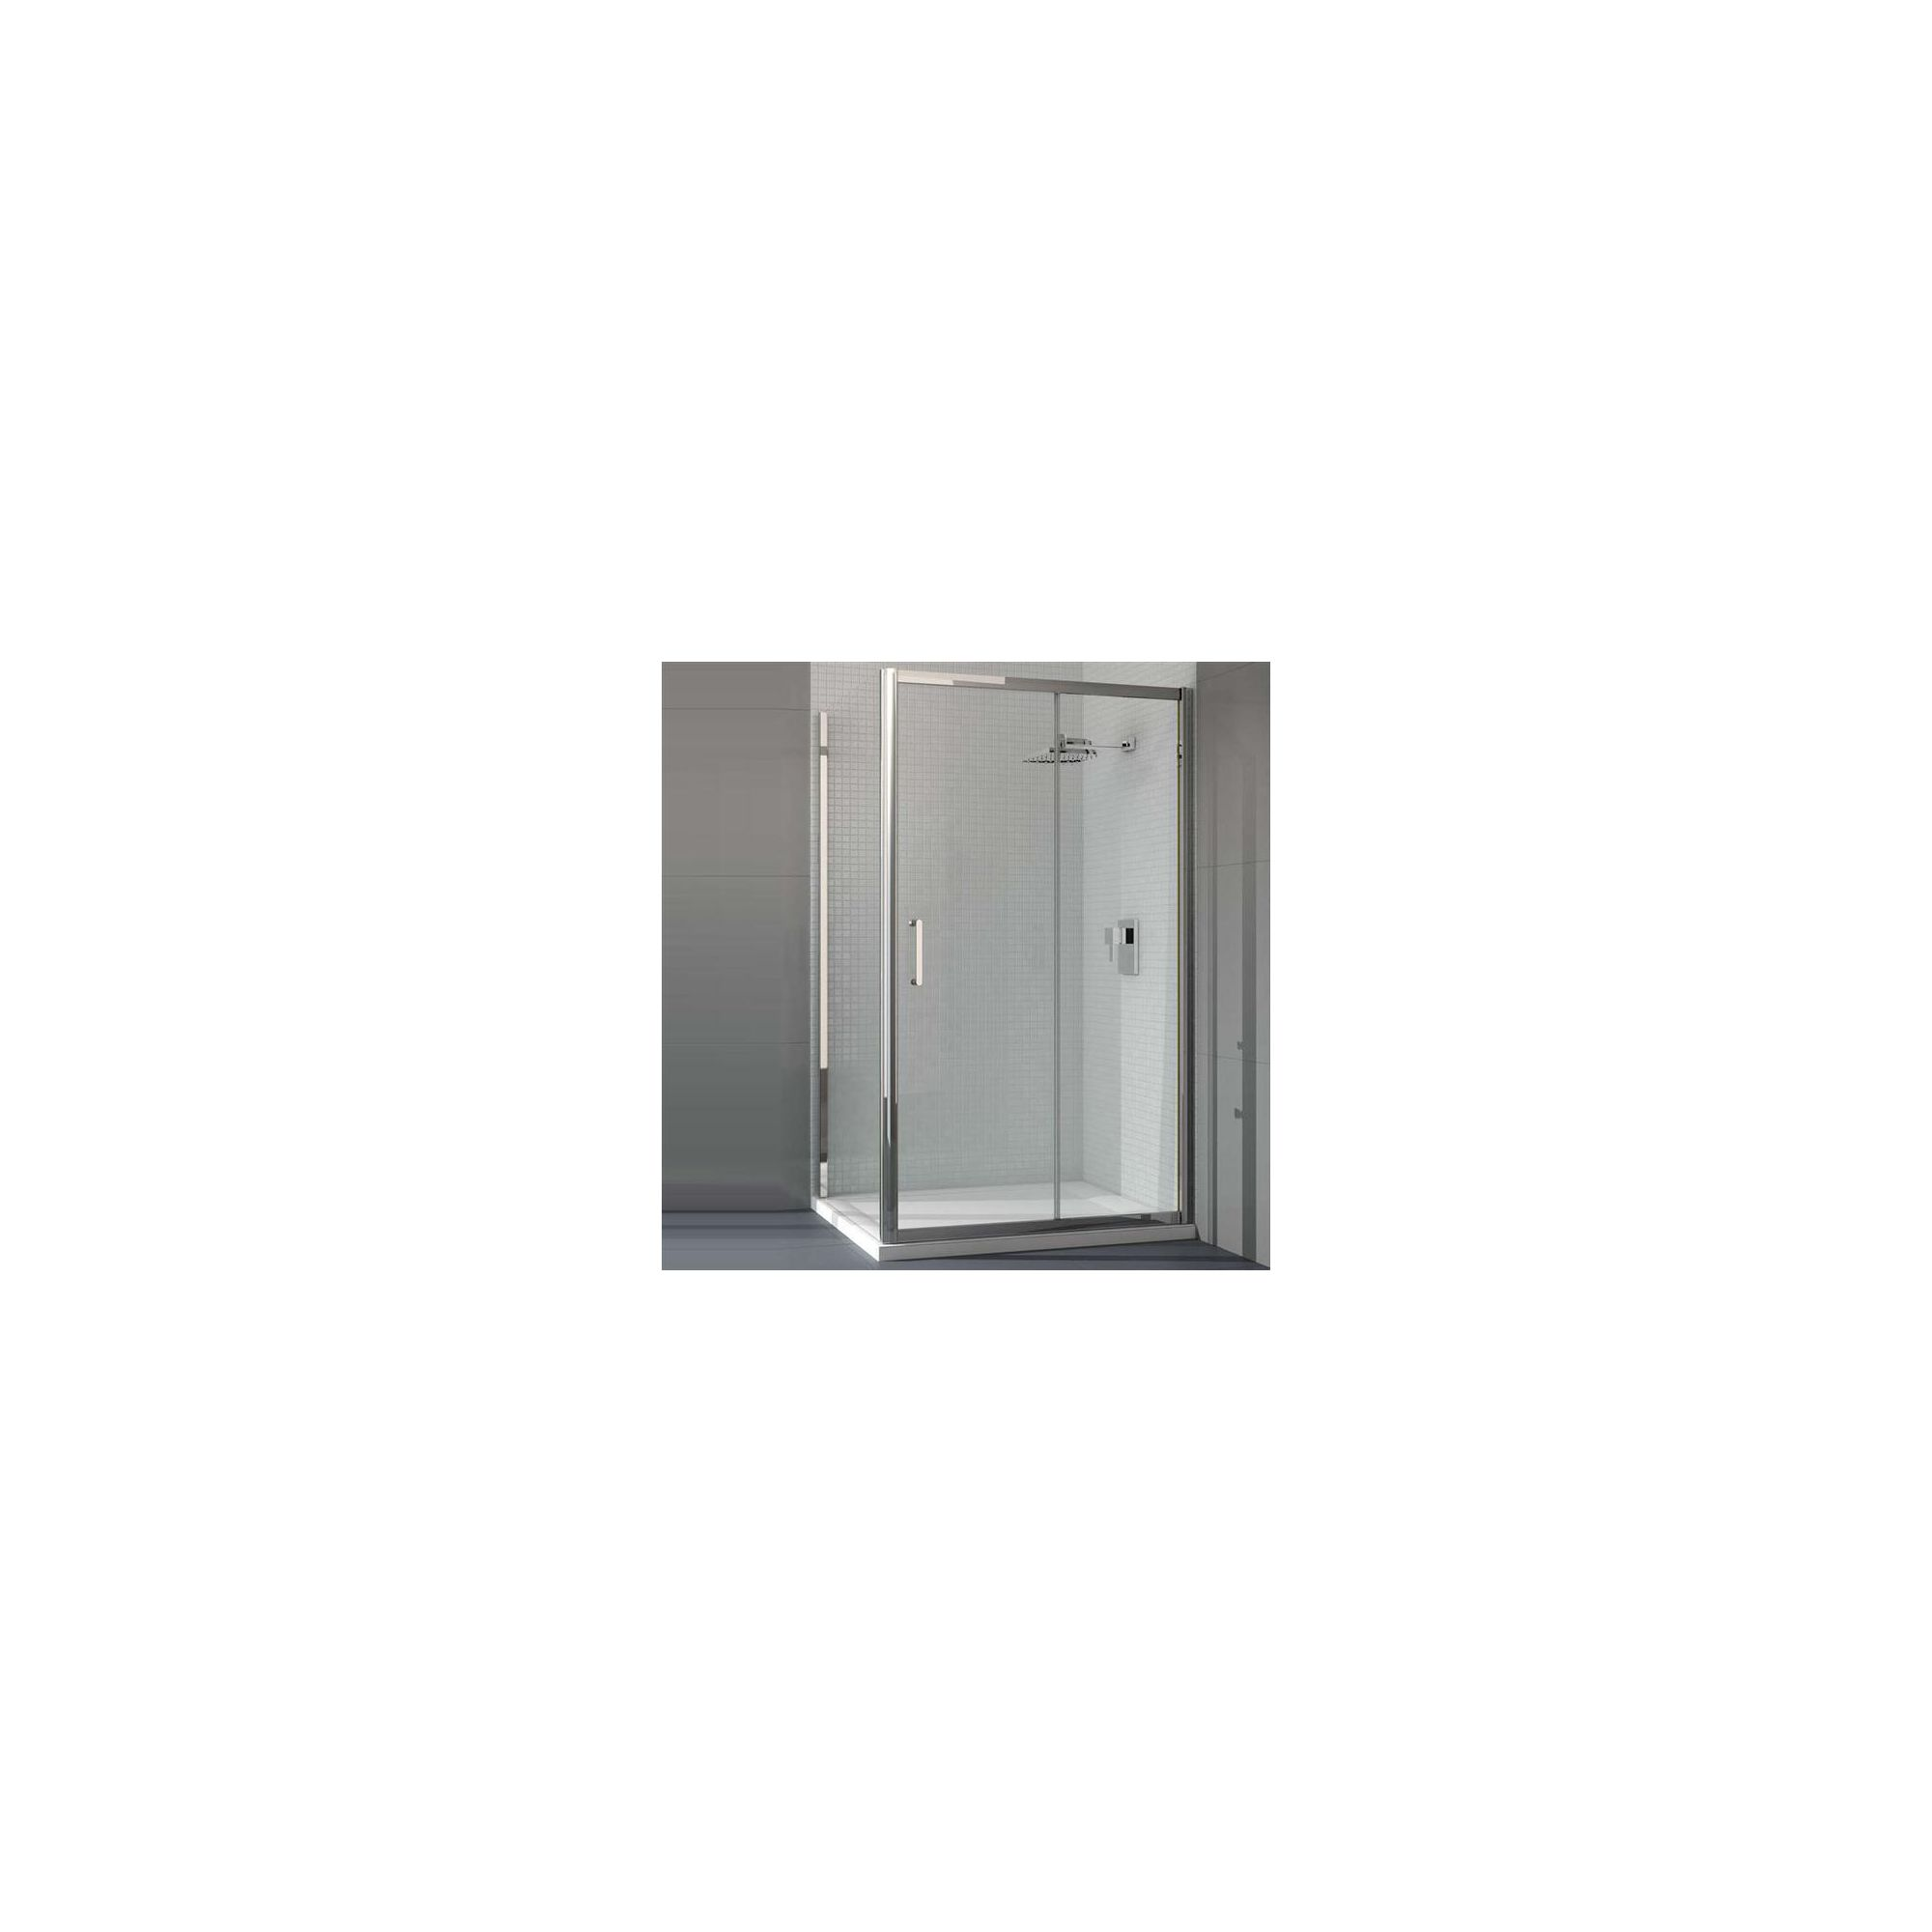 Merlyn Vivid Six Sliding Door Shower Enclosure, 1100mm x 800mm, Low Profile Tray, 6mm Glass at Tesco Direct